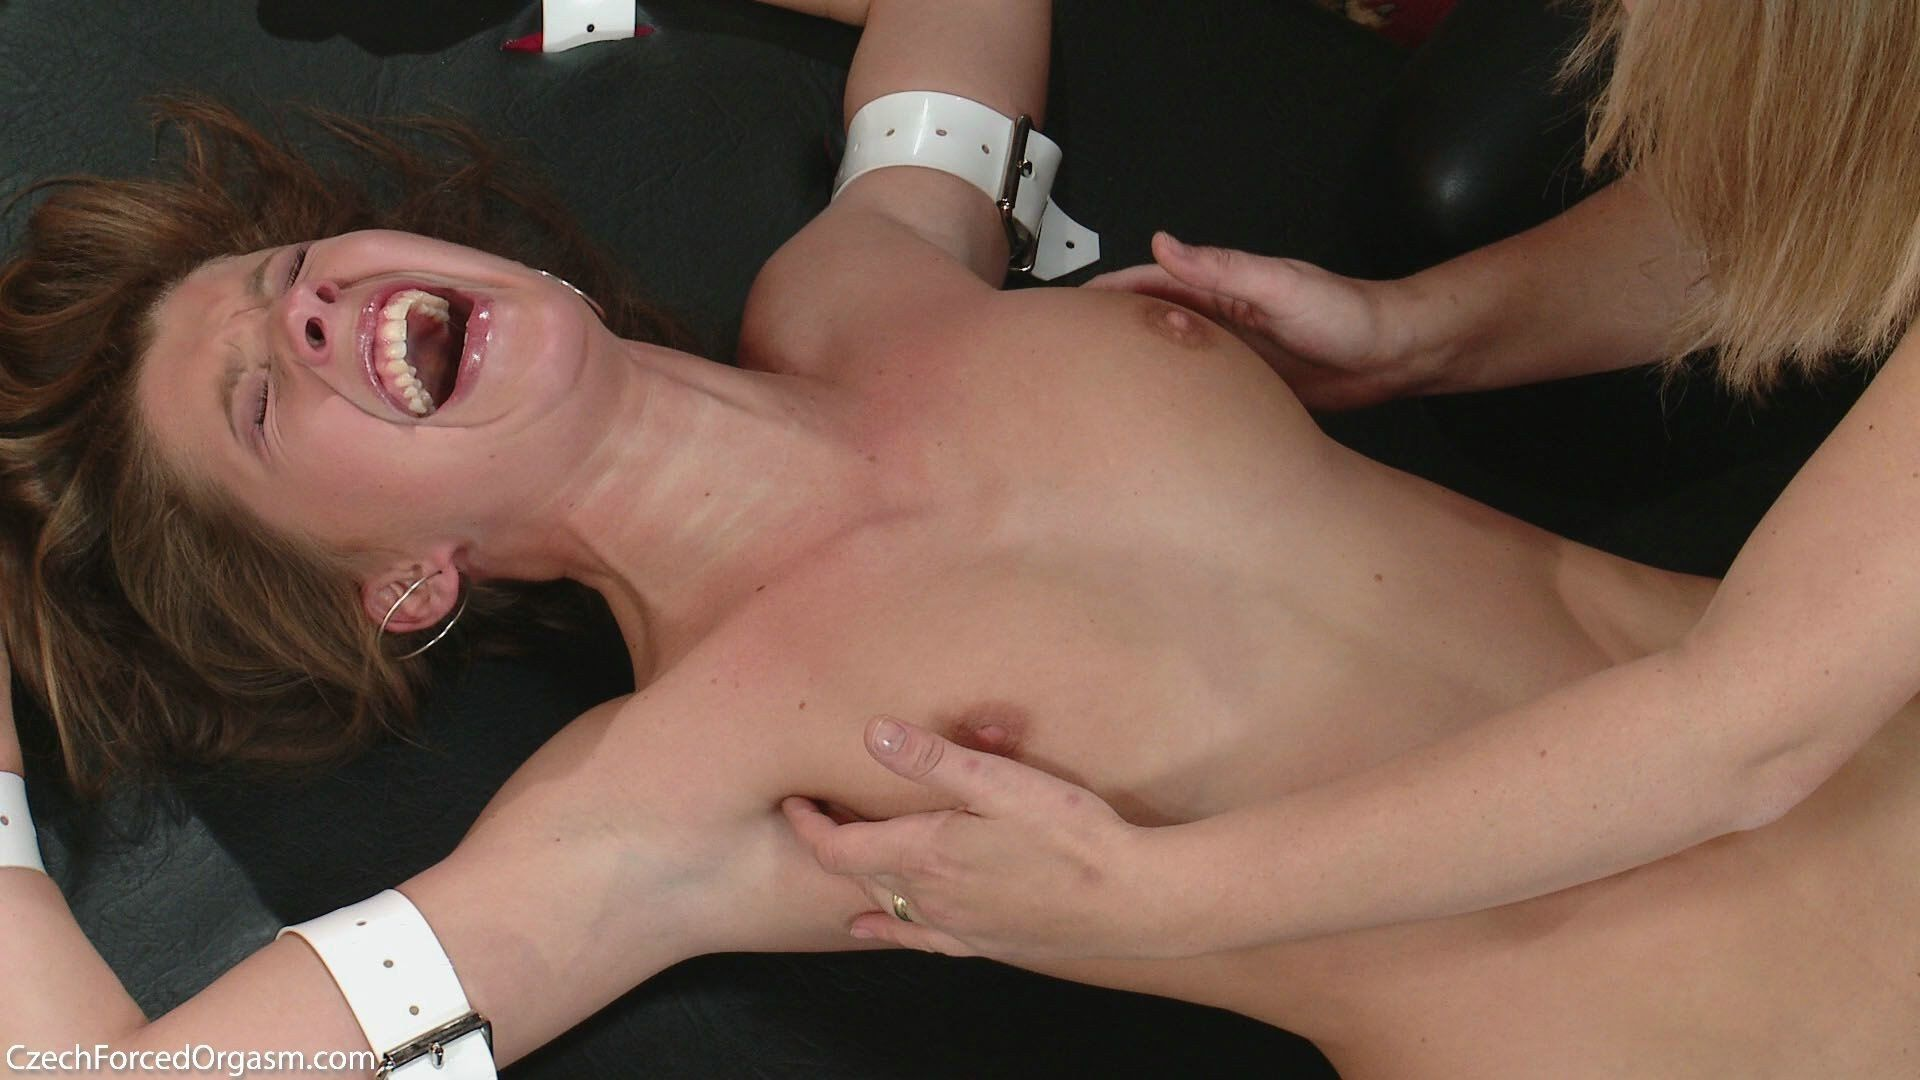 Nude Shemale Tickled By A Woman Porn tickled naked girls xxx . 50 new porn photos. comments: 1